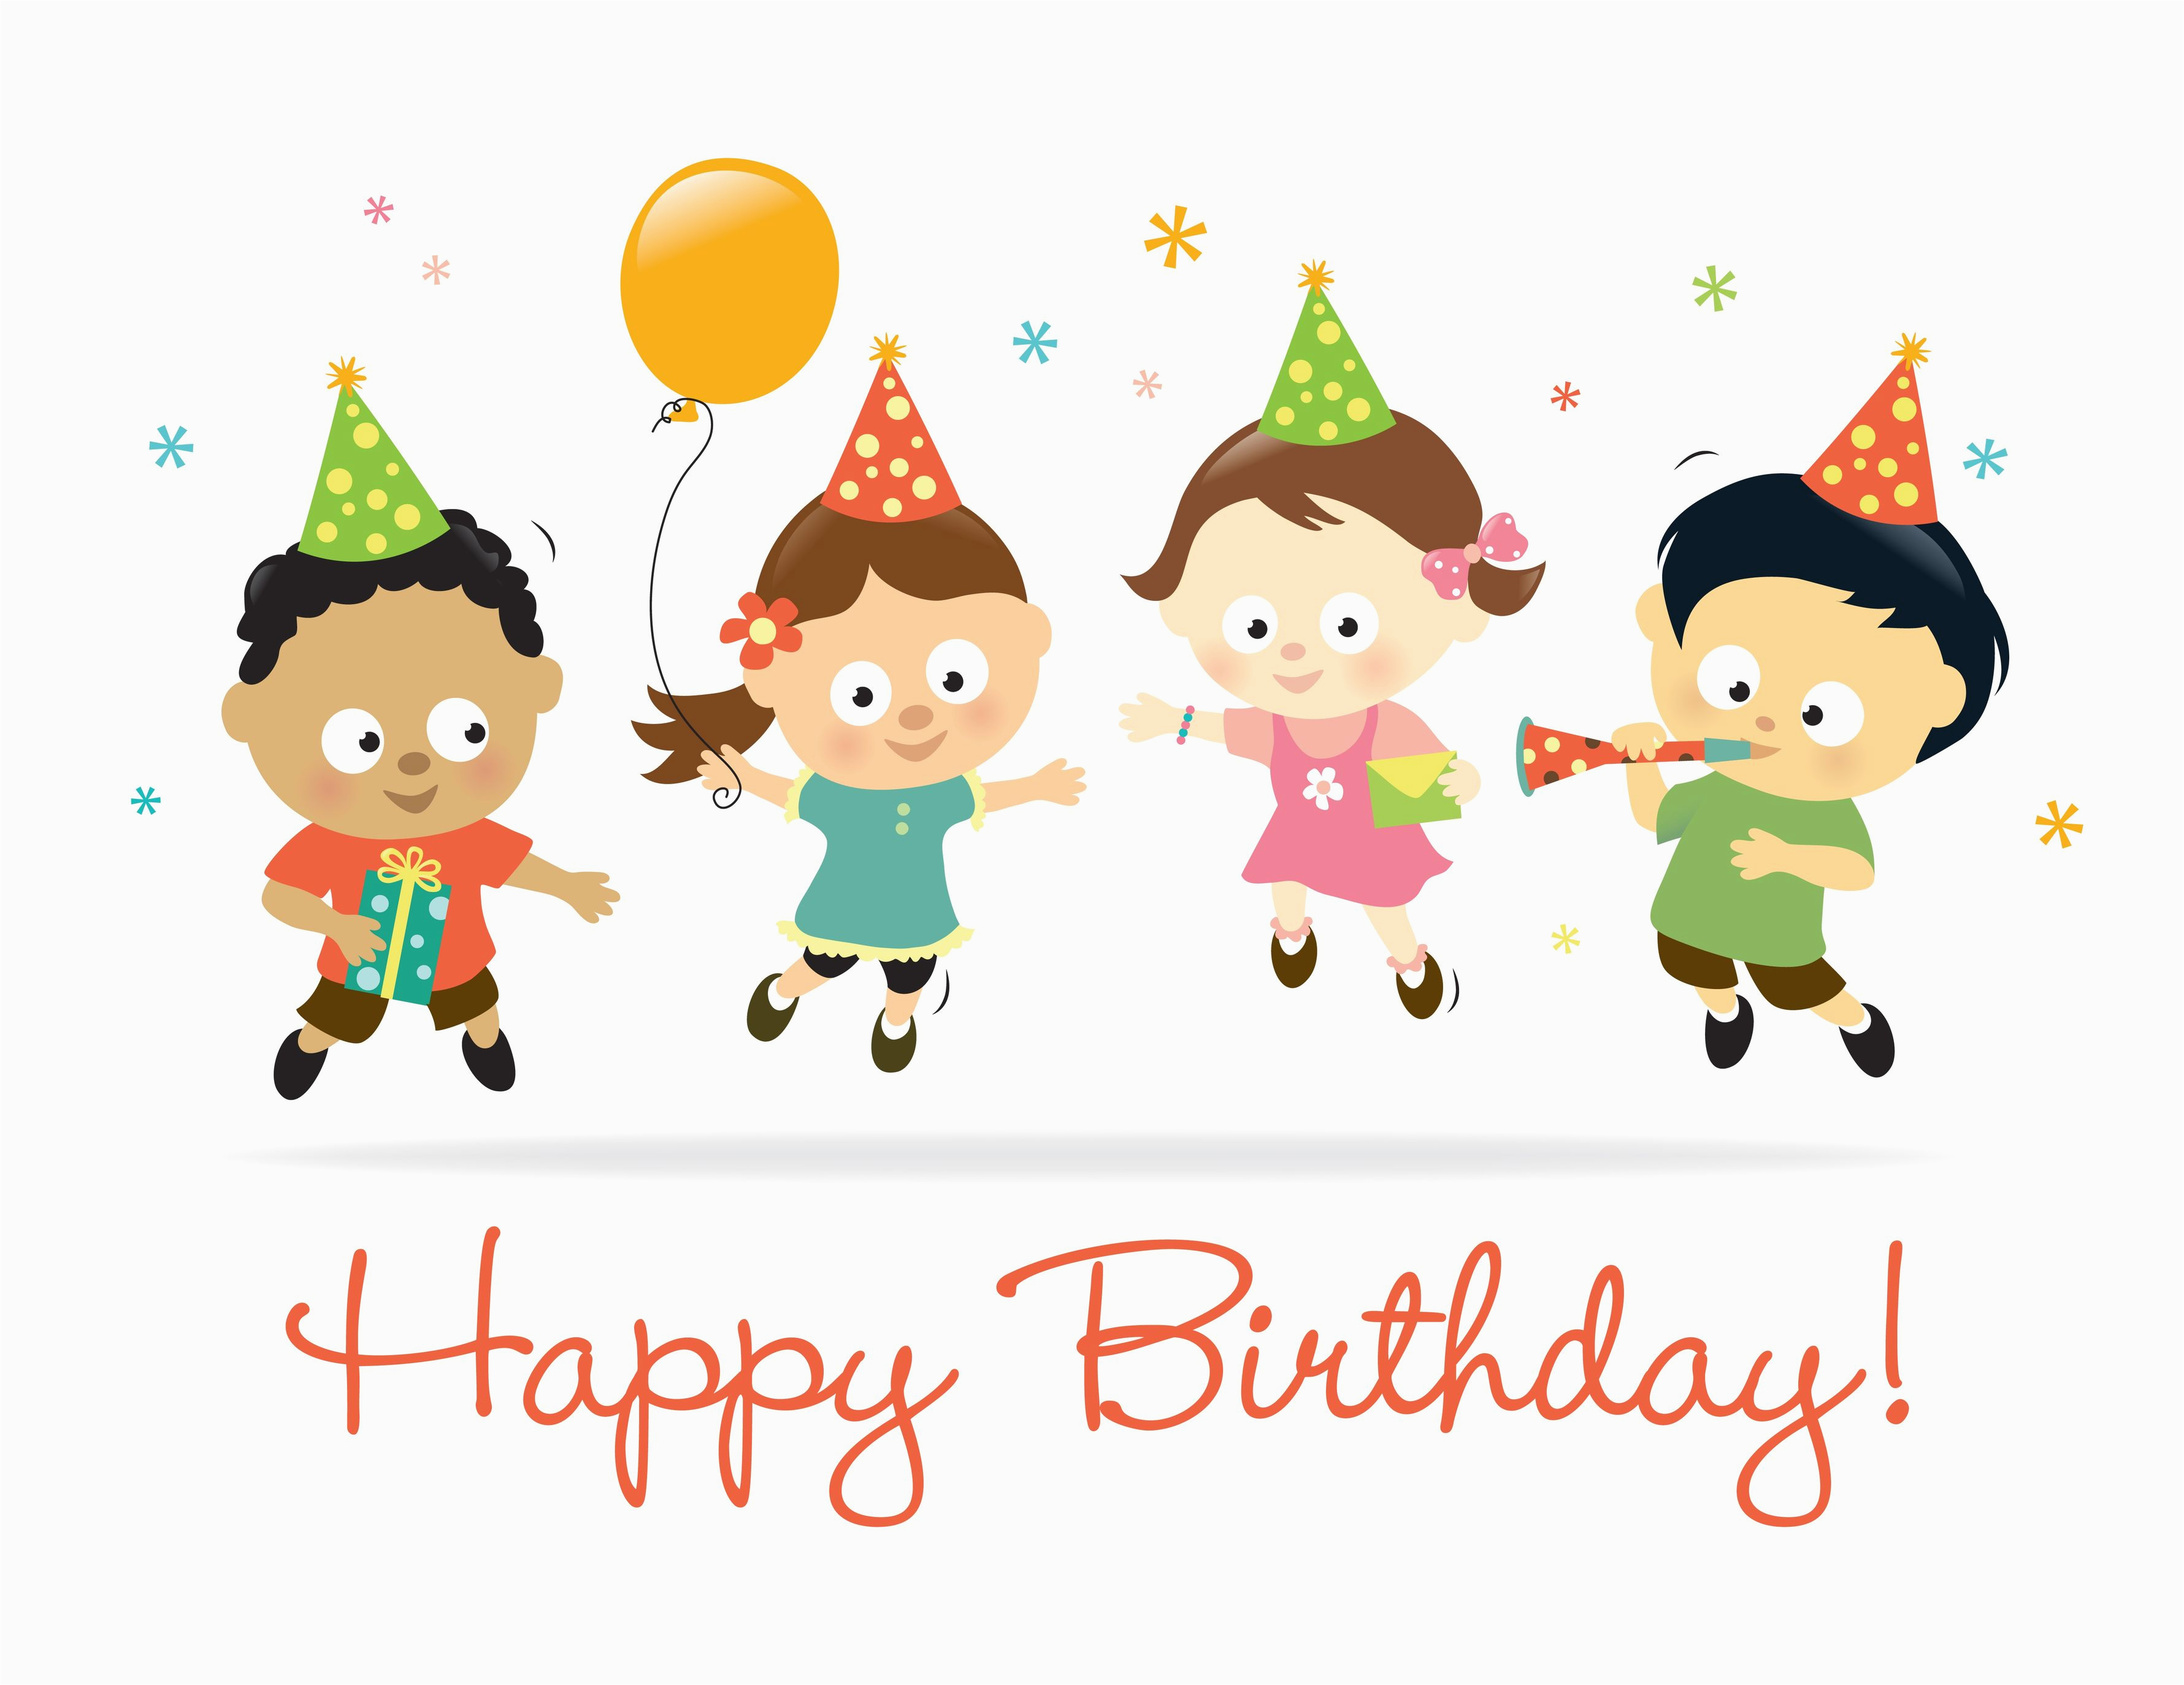 Free Animated Birthday Cards For Kids Animations Download 9to5animations Com